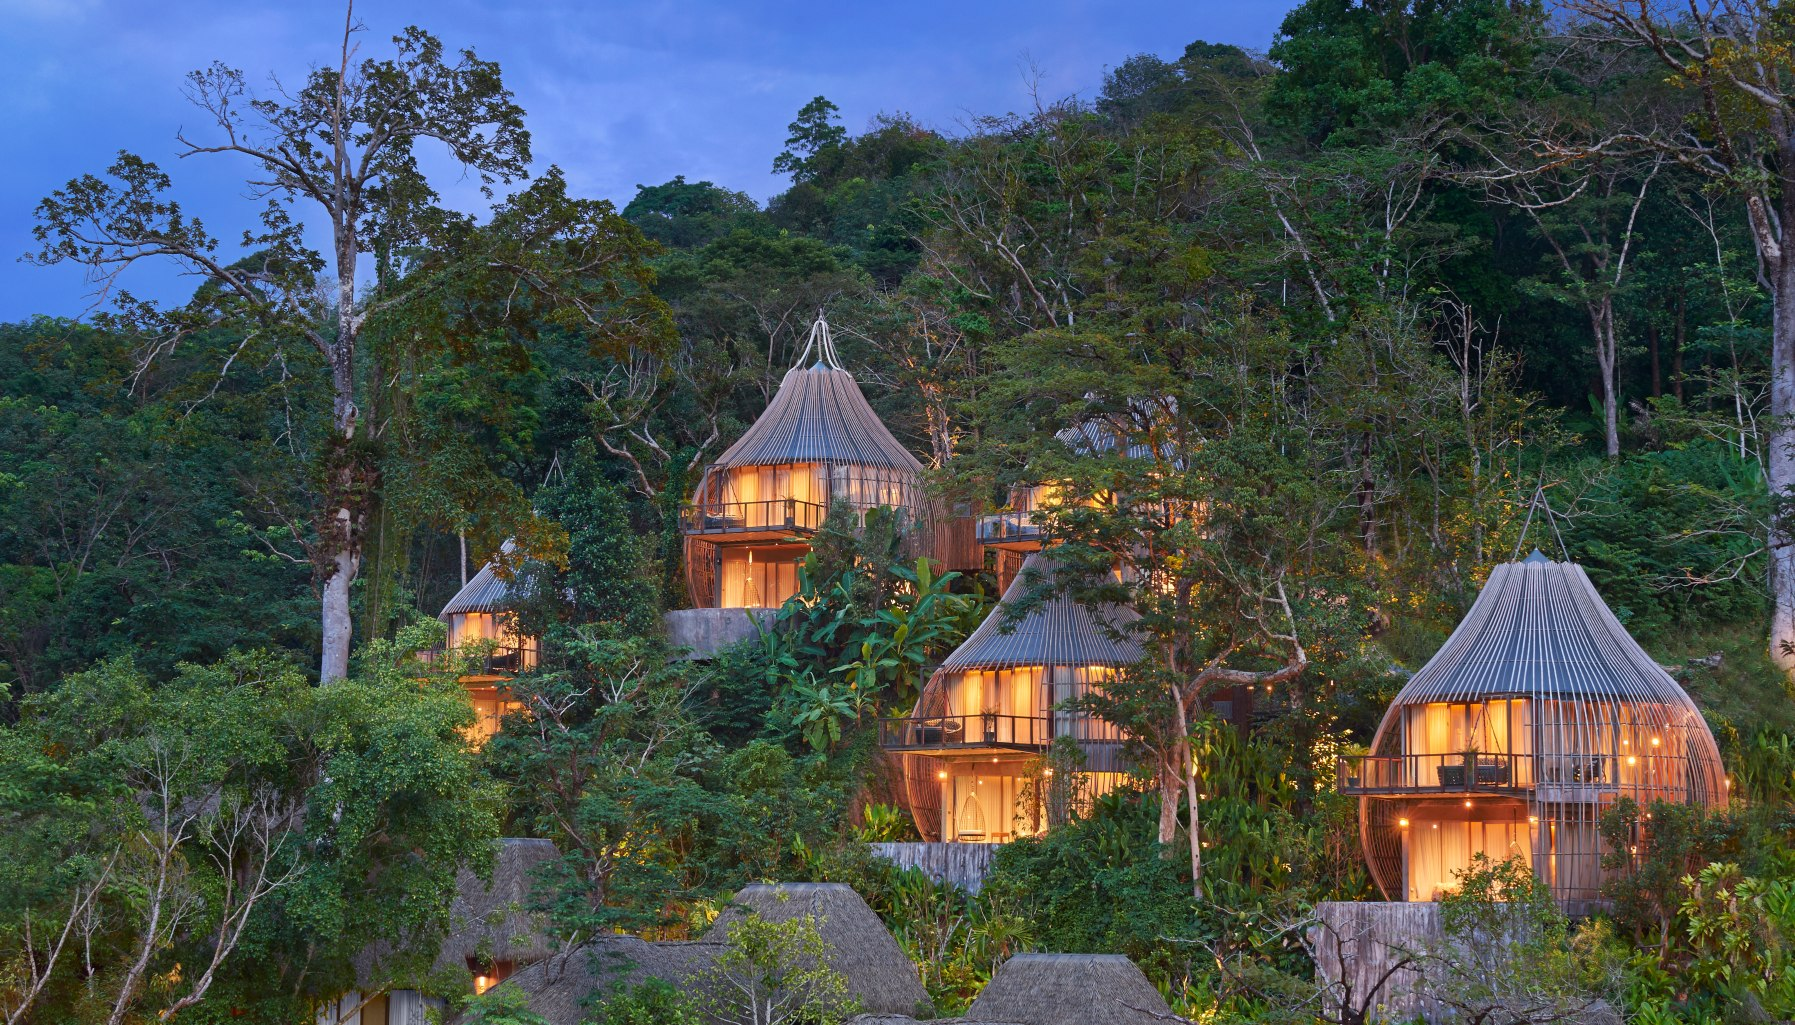 This Hillside Keemala Resort In Phuket Transports You To A World Of Fantasy And Luxury   RobbReport Malaysia